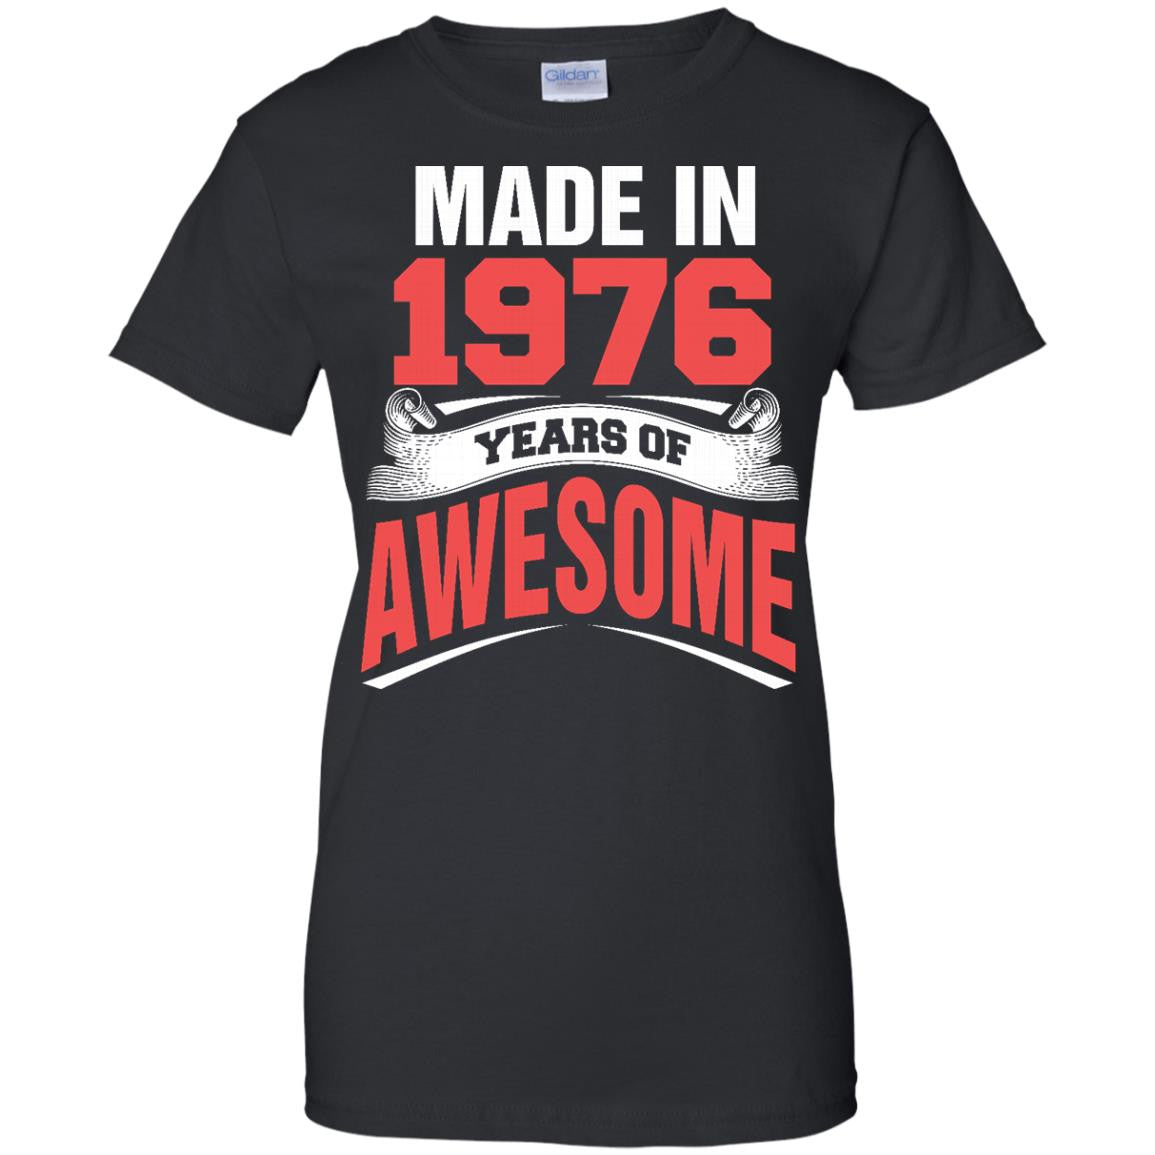 1976 Shirts Made In 1976 Year Of Awesome T-shirts Hoodies Sweatshirts